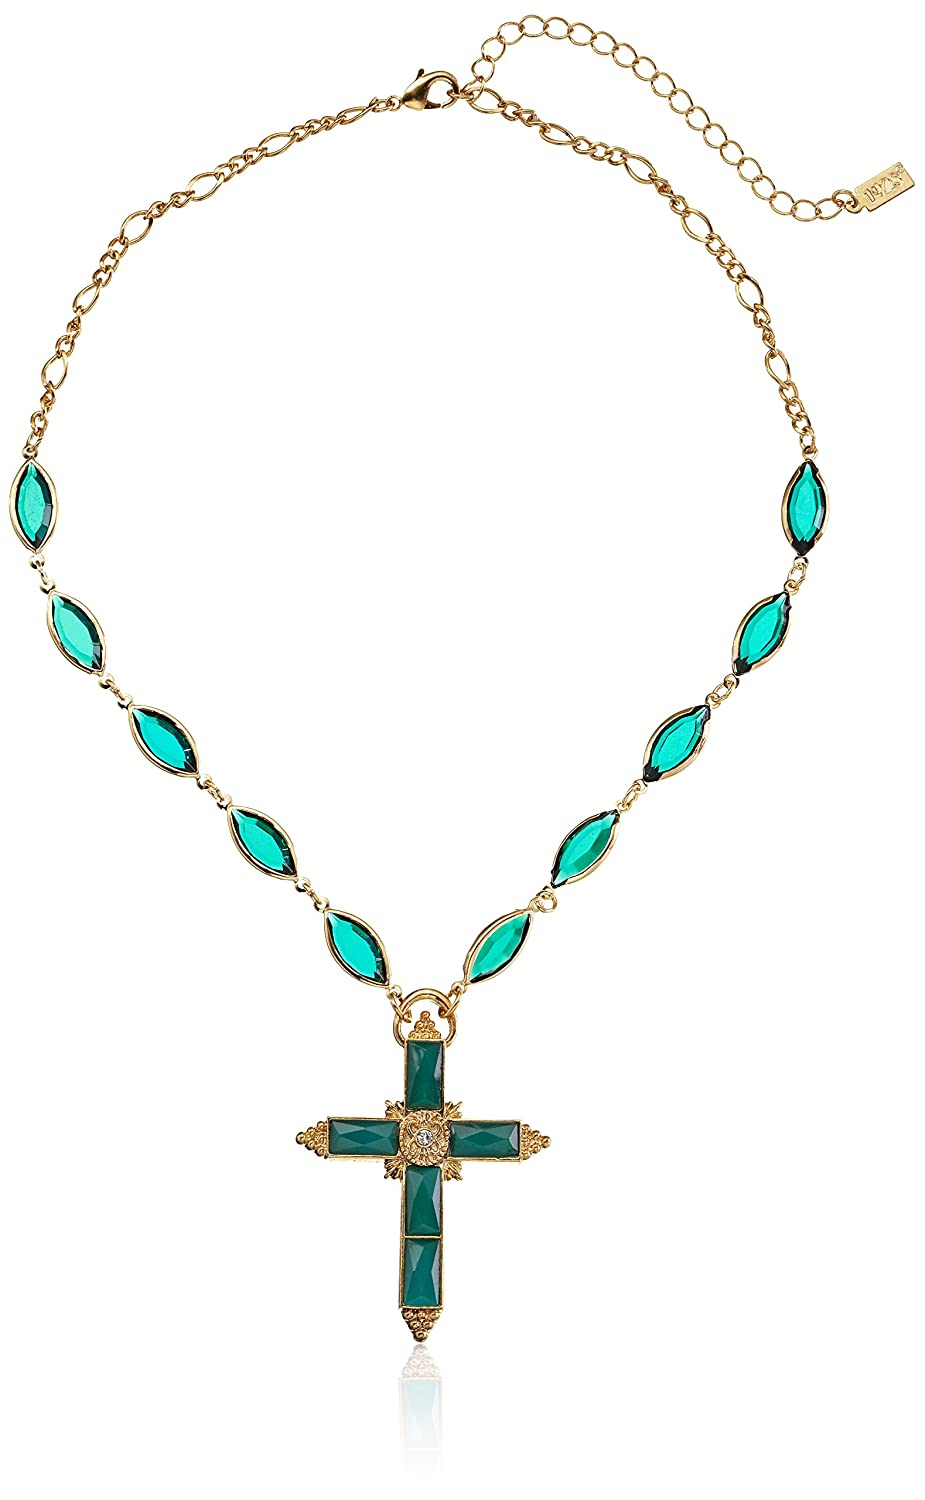 1928 Jewelry Gold-Tone Green Cross Necklace Adjustable Pendant Necklace 16